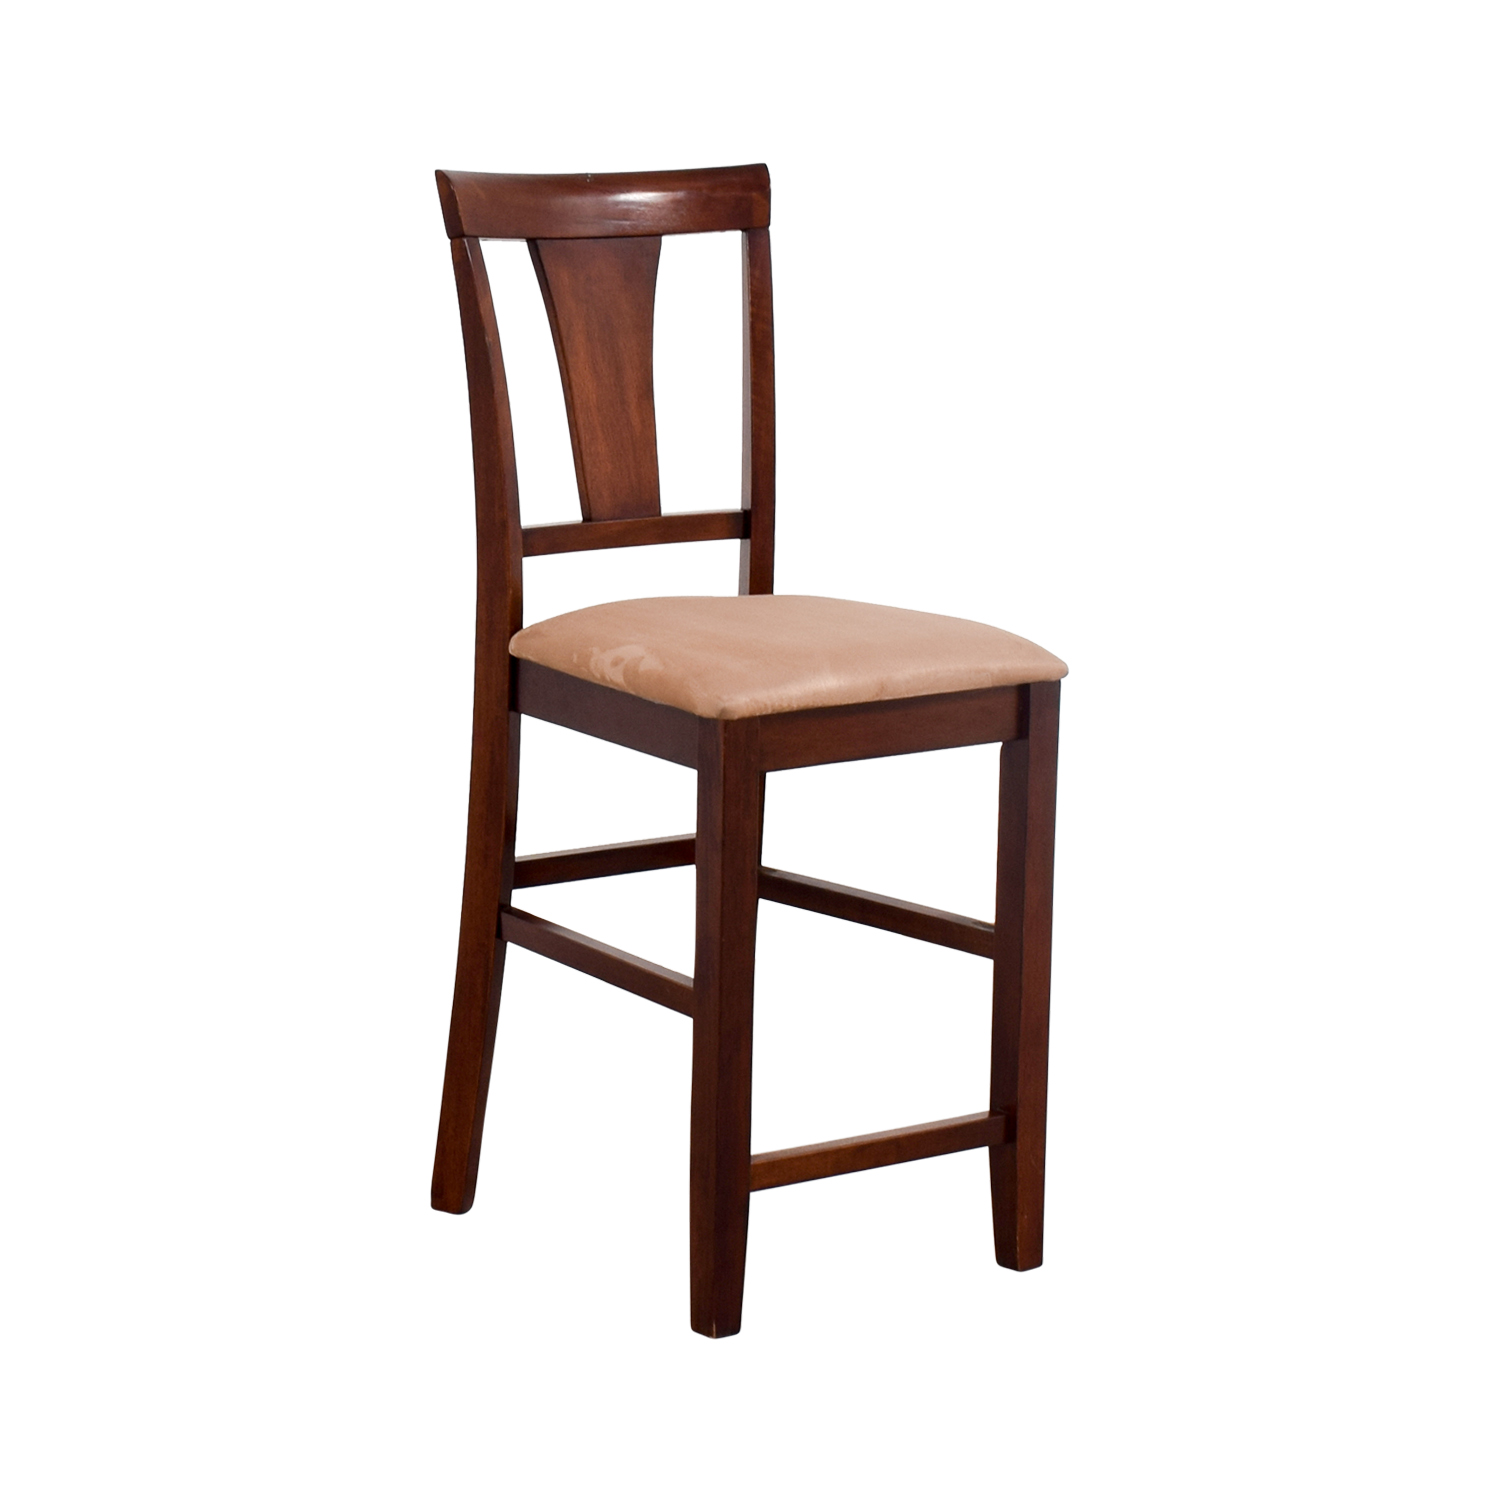 light wood dining chairs install chair rail 90 off cherry counter height with